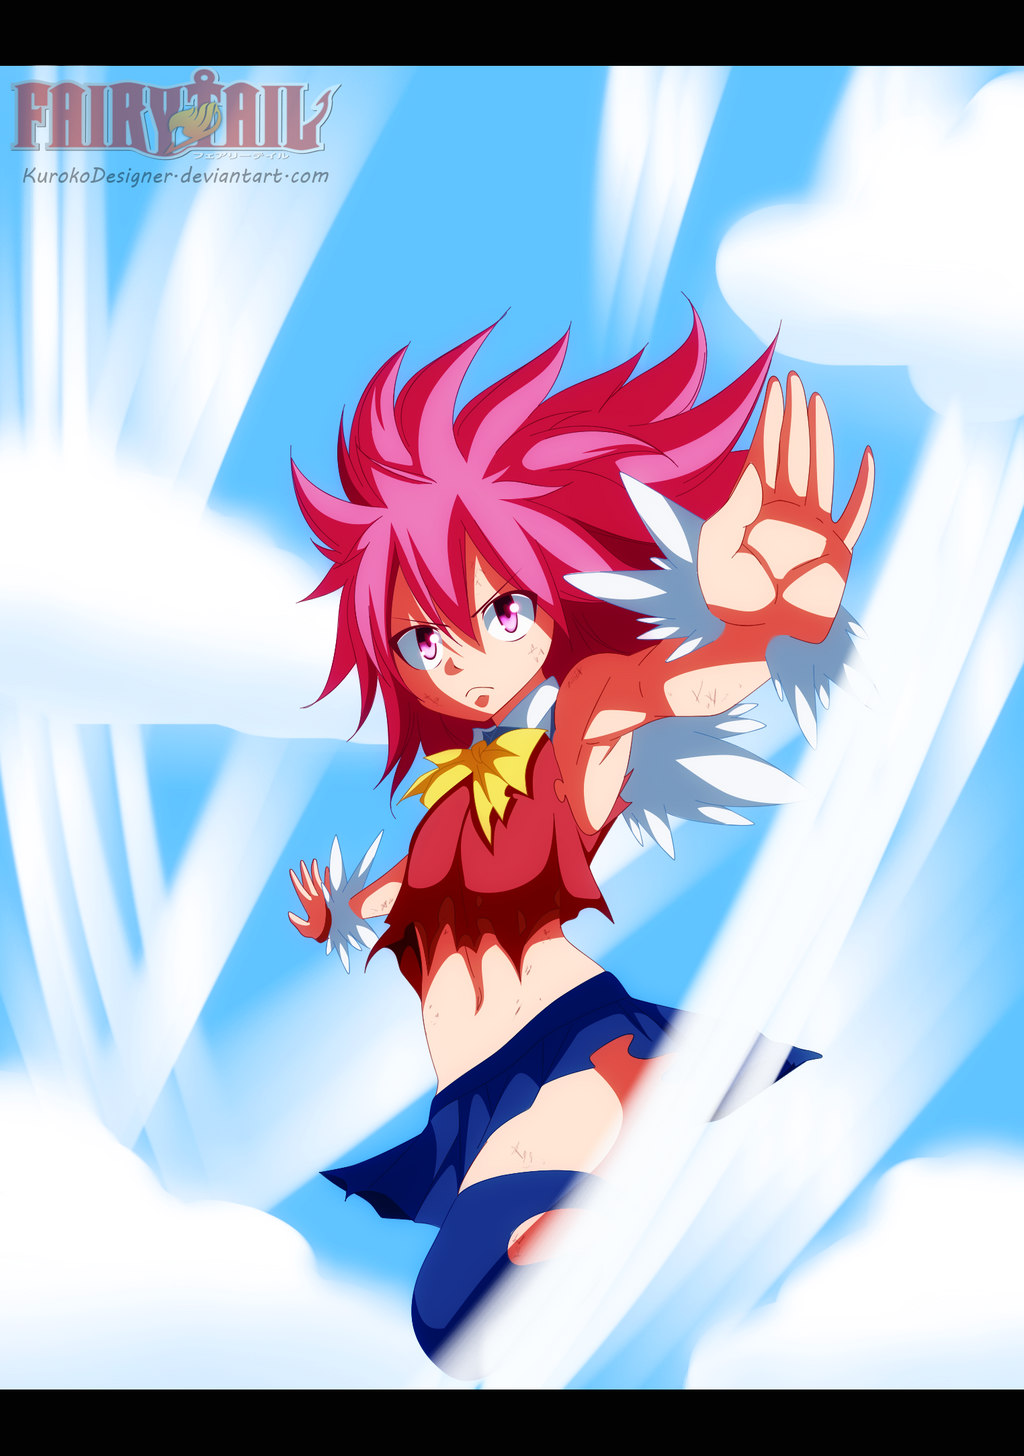 Wendy Dragon Force. by KurokoDesigner on DeviantArt